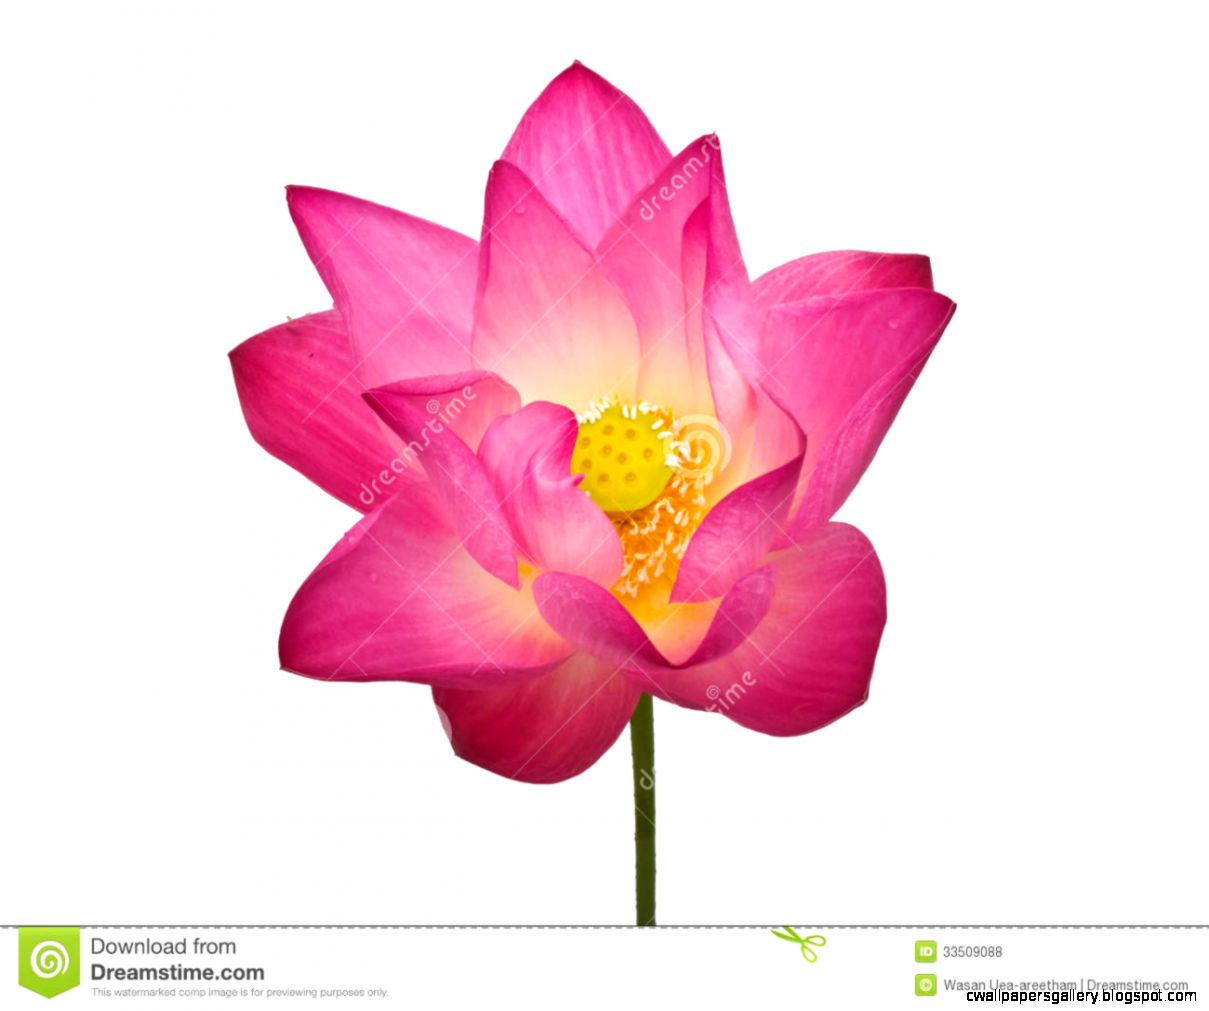 hoontoidly Single Flower White Background No Watermark Images